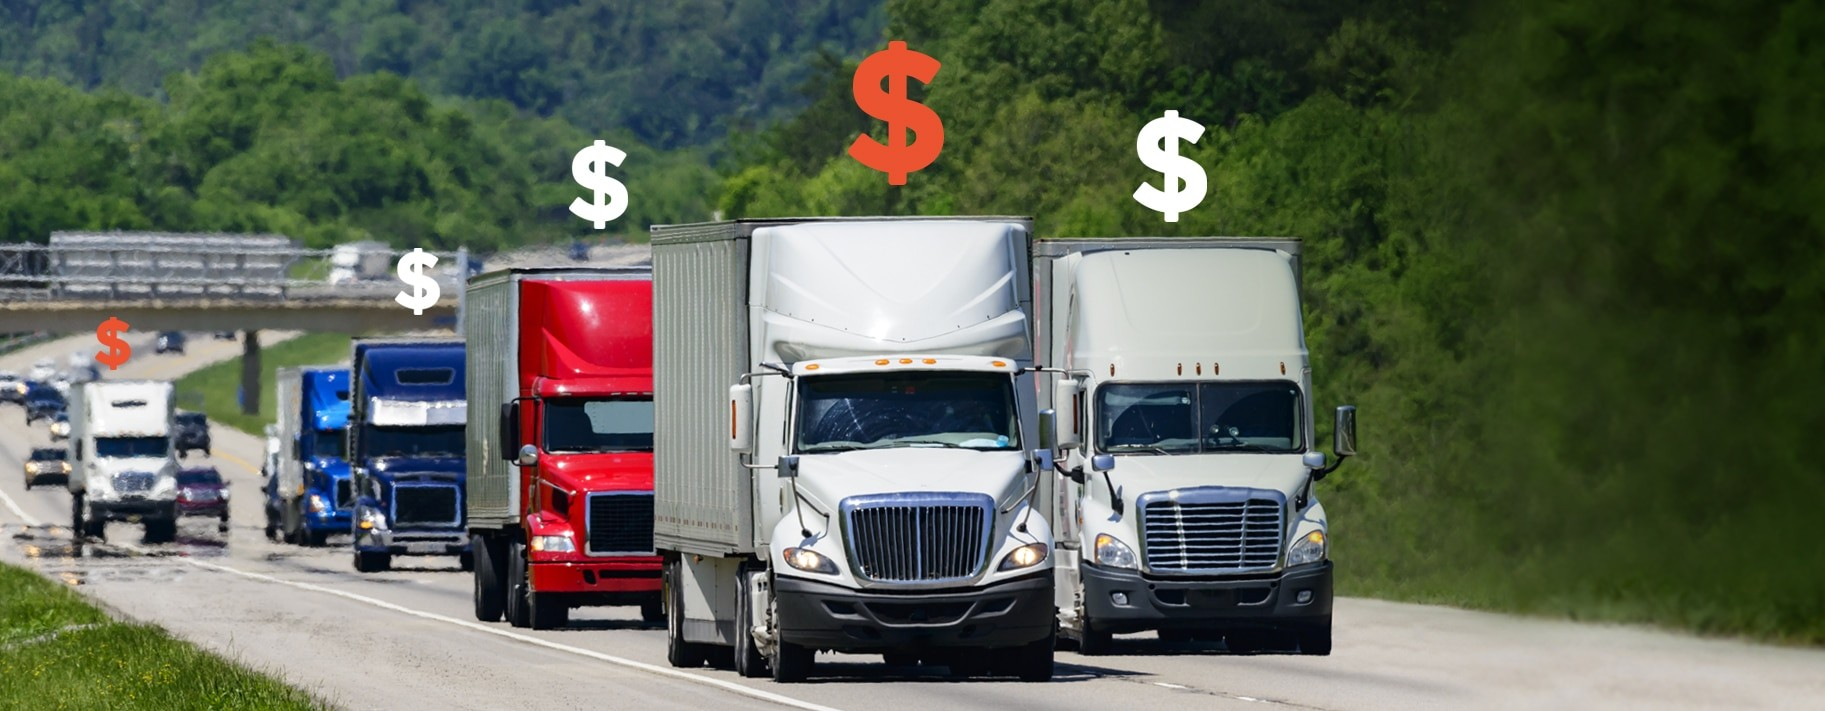 LTL freight savings